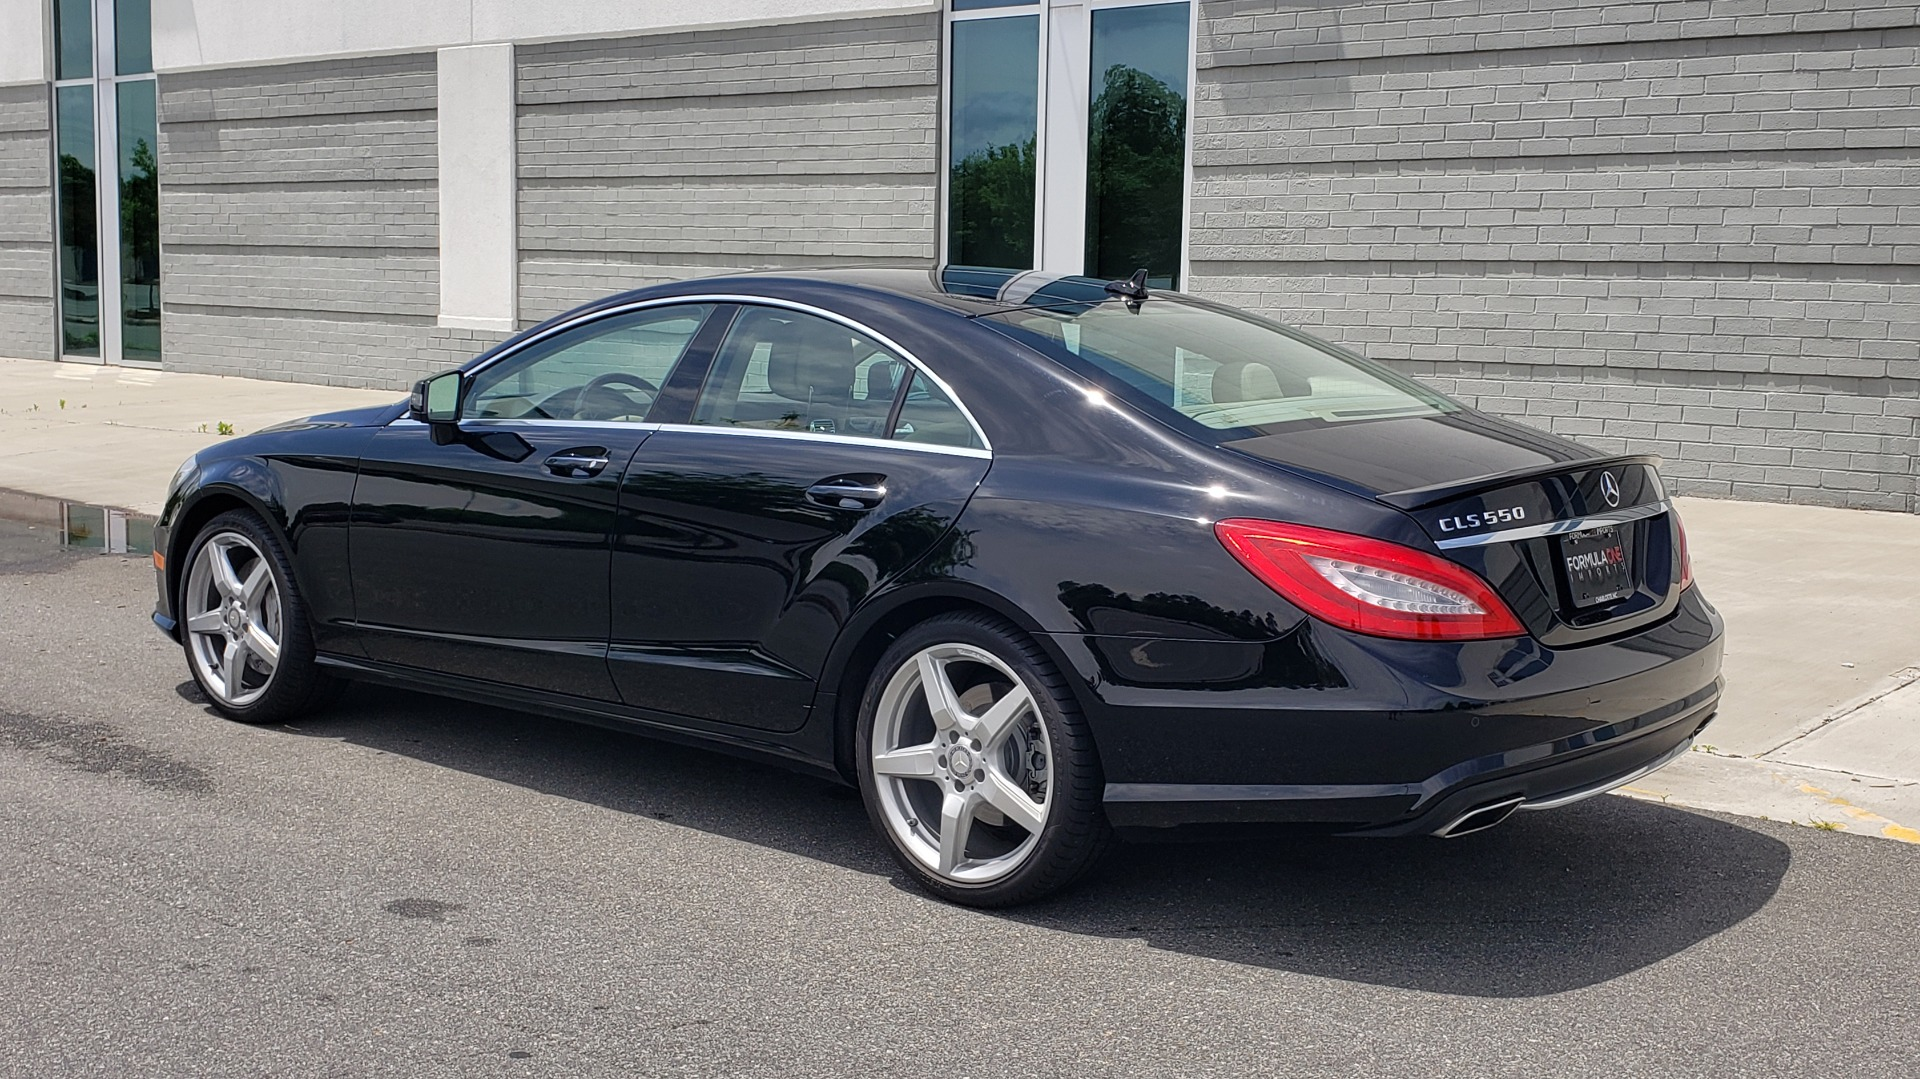 Used 2014 Mercedes-Benz CLS-CLASS CLS 550 PREMIUM / AMG SPORT WHLS / SUNROOF / LANE TRACK / PARKTRONIC for sale Sold at Formula Imports in Charlotte NC 28227 6